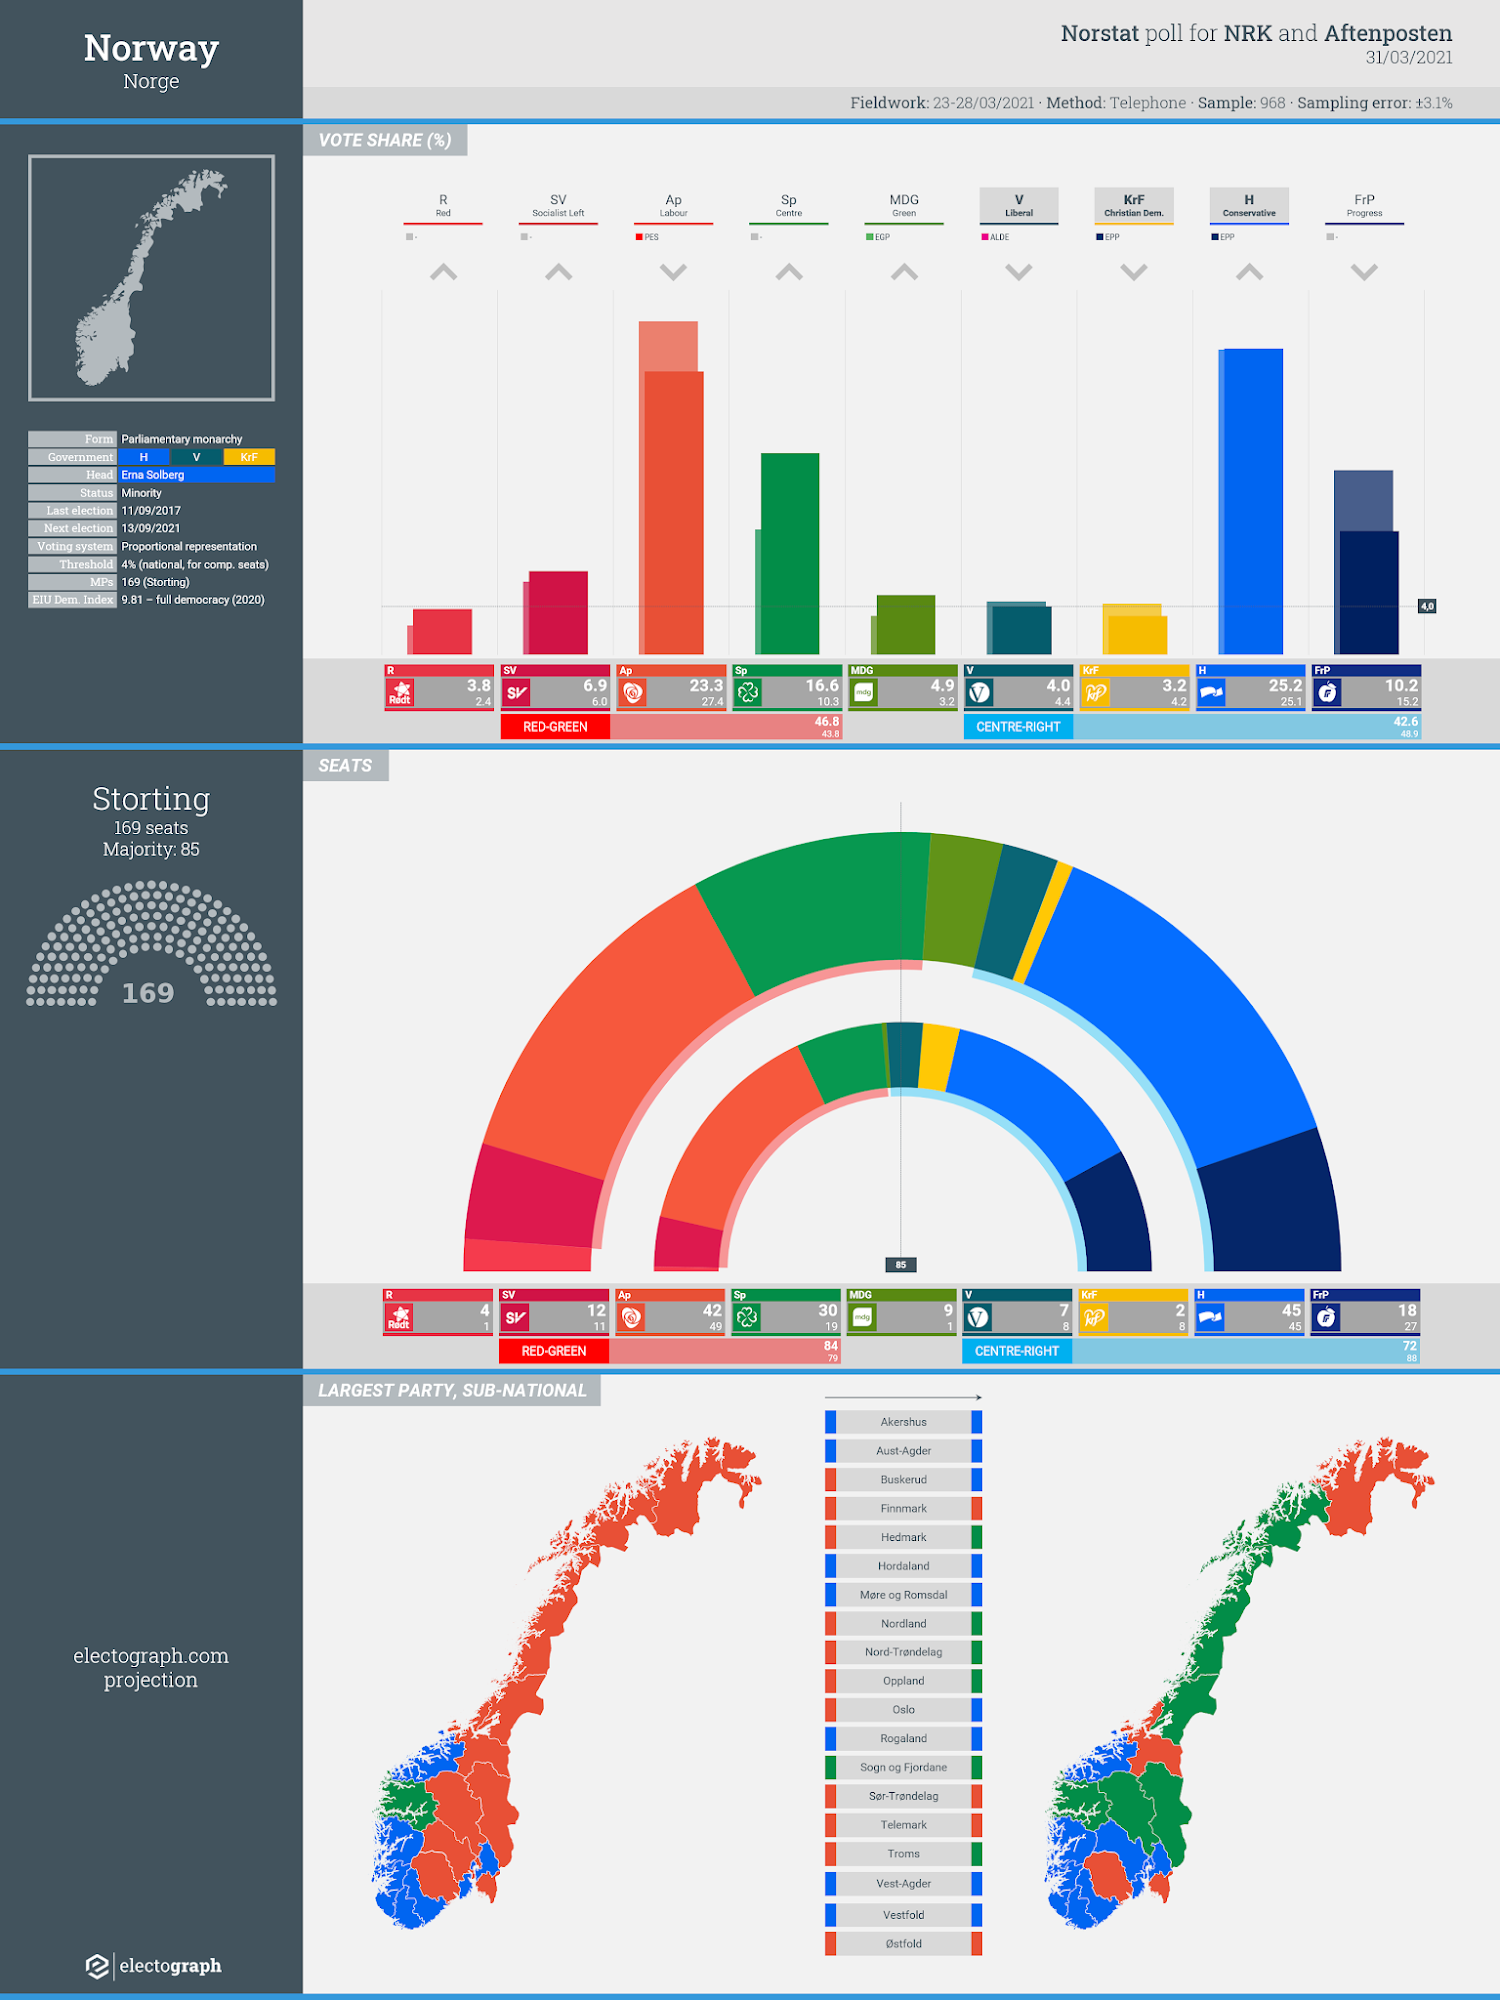 NORWAY: Norstat poll chart for NRK and Aftenposten, 31 March 2021